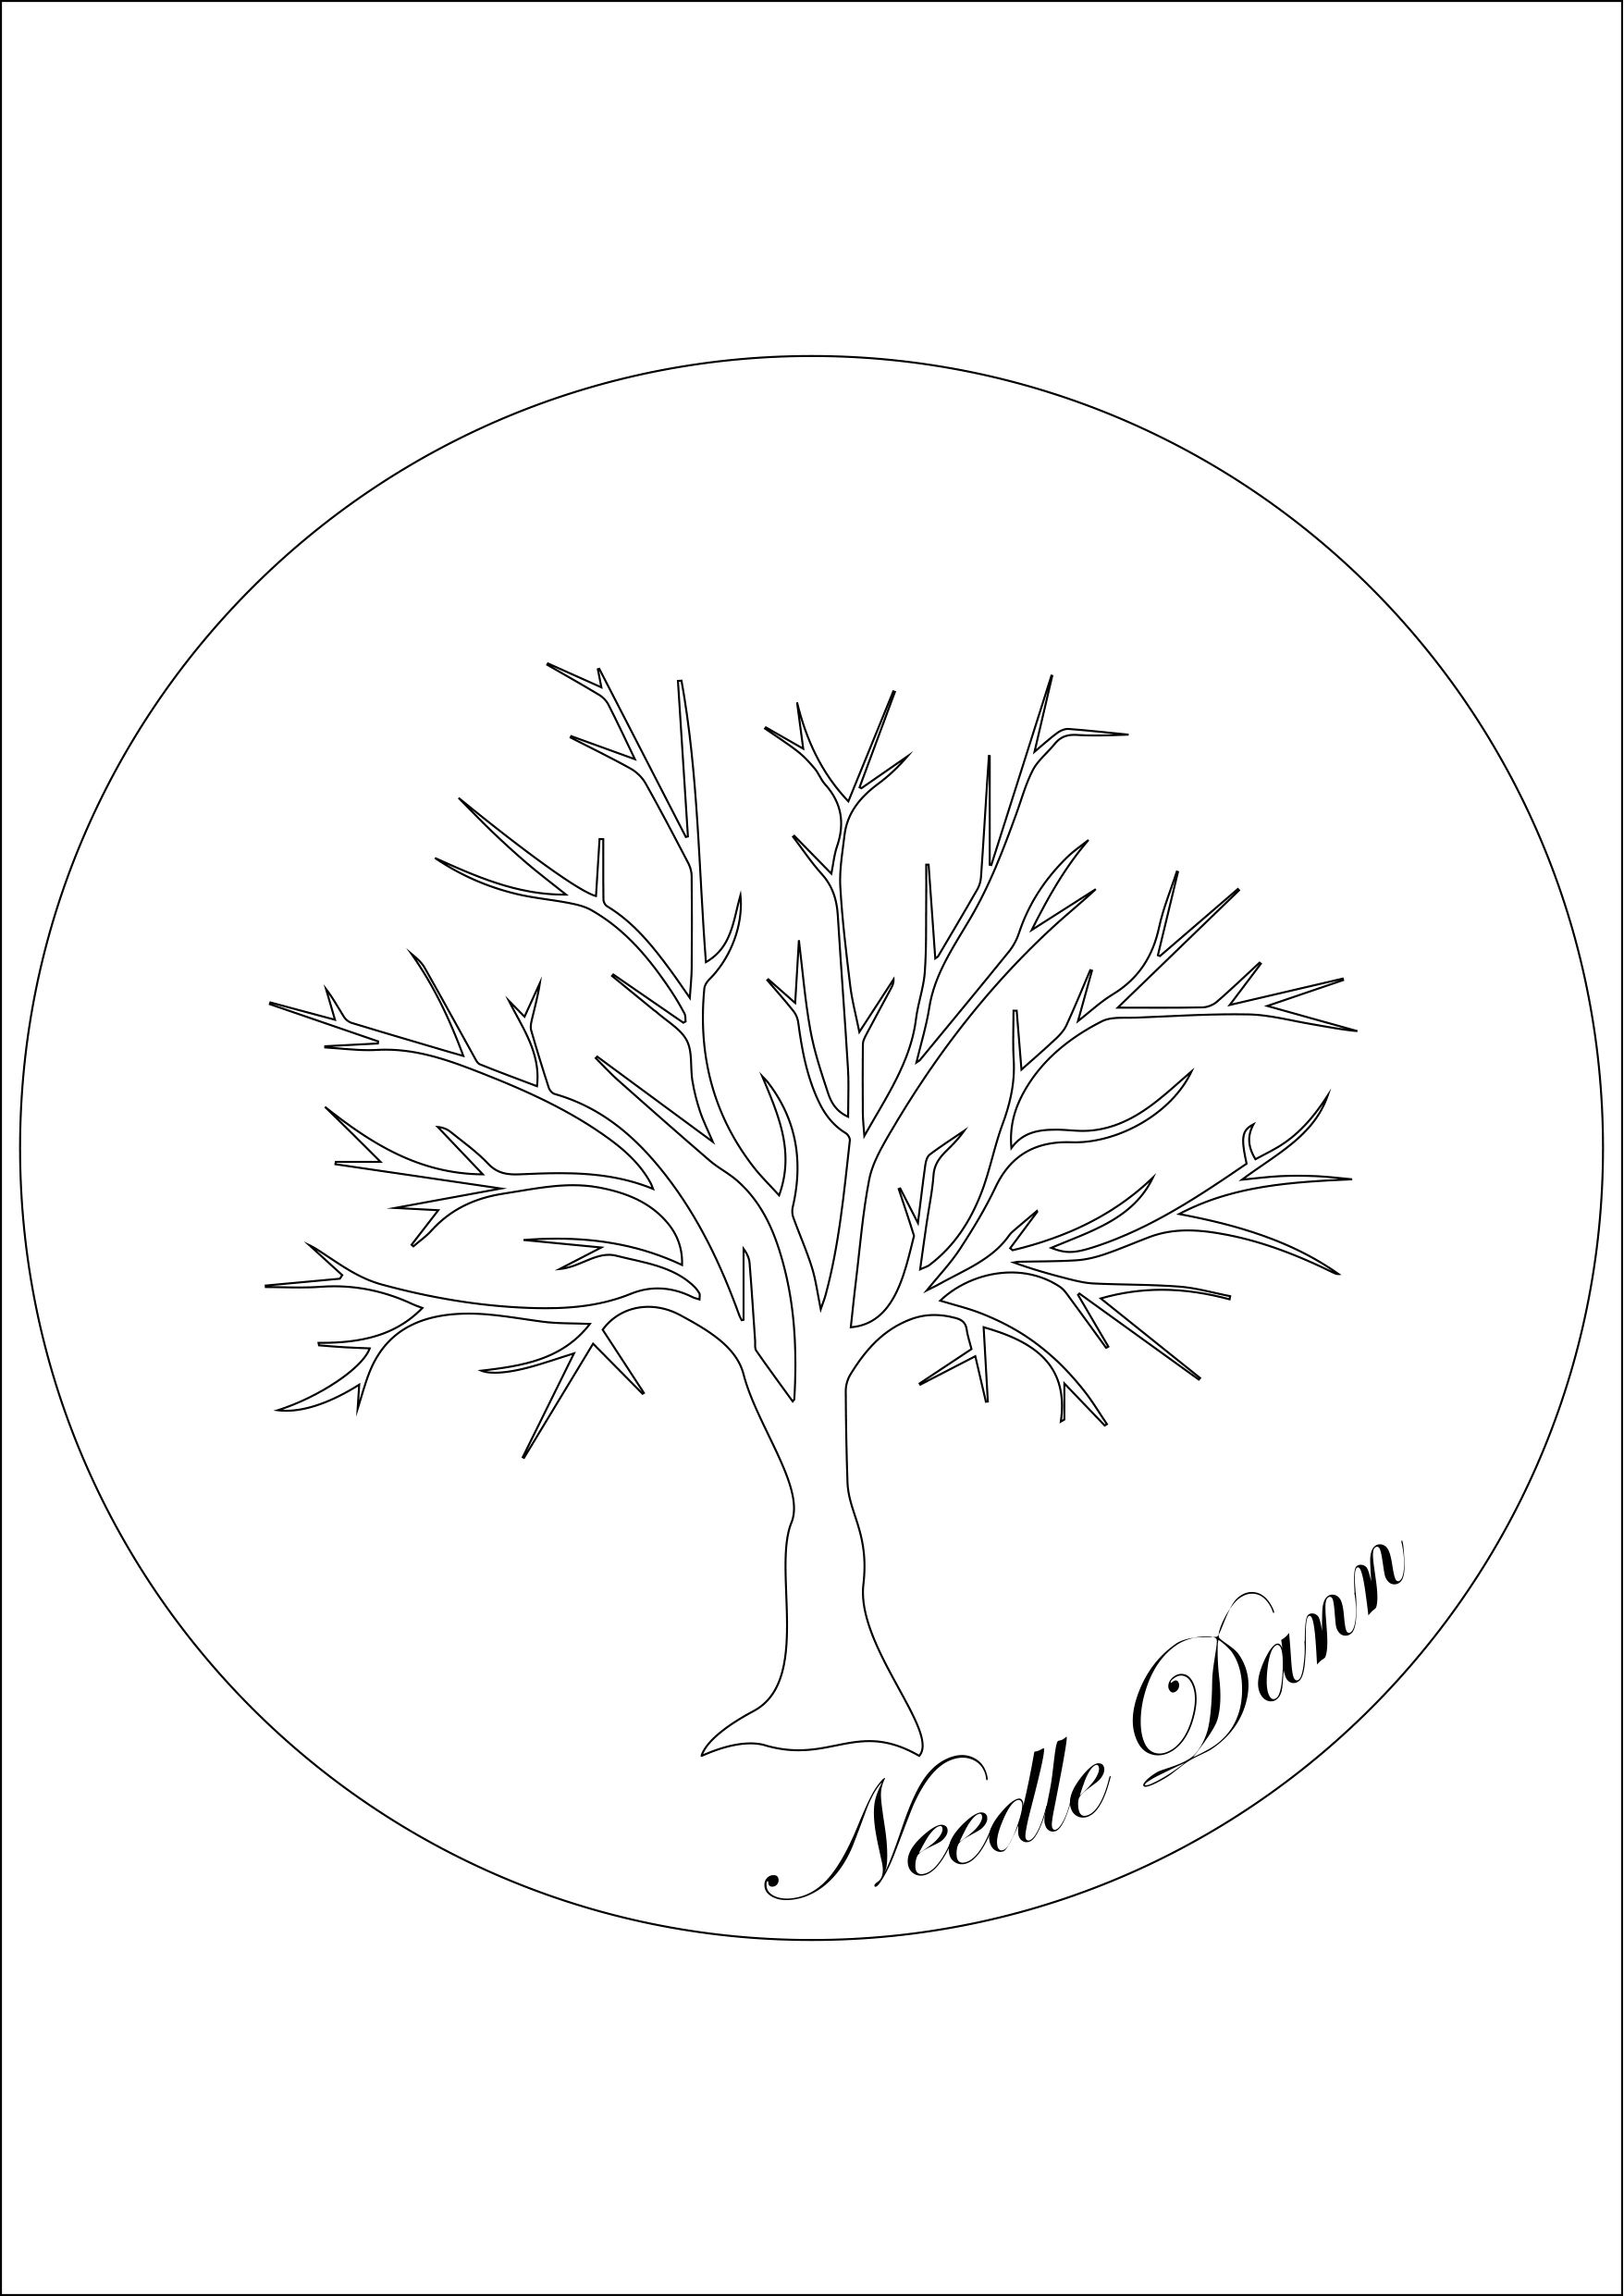 Outline Cherry Blossom Tree Embroidery Pattern Free Printable A3 French Knot Embroidery Hand Embroidery Patterns Flowers Embroidery Patterns Free